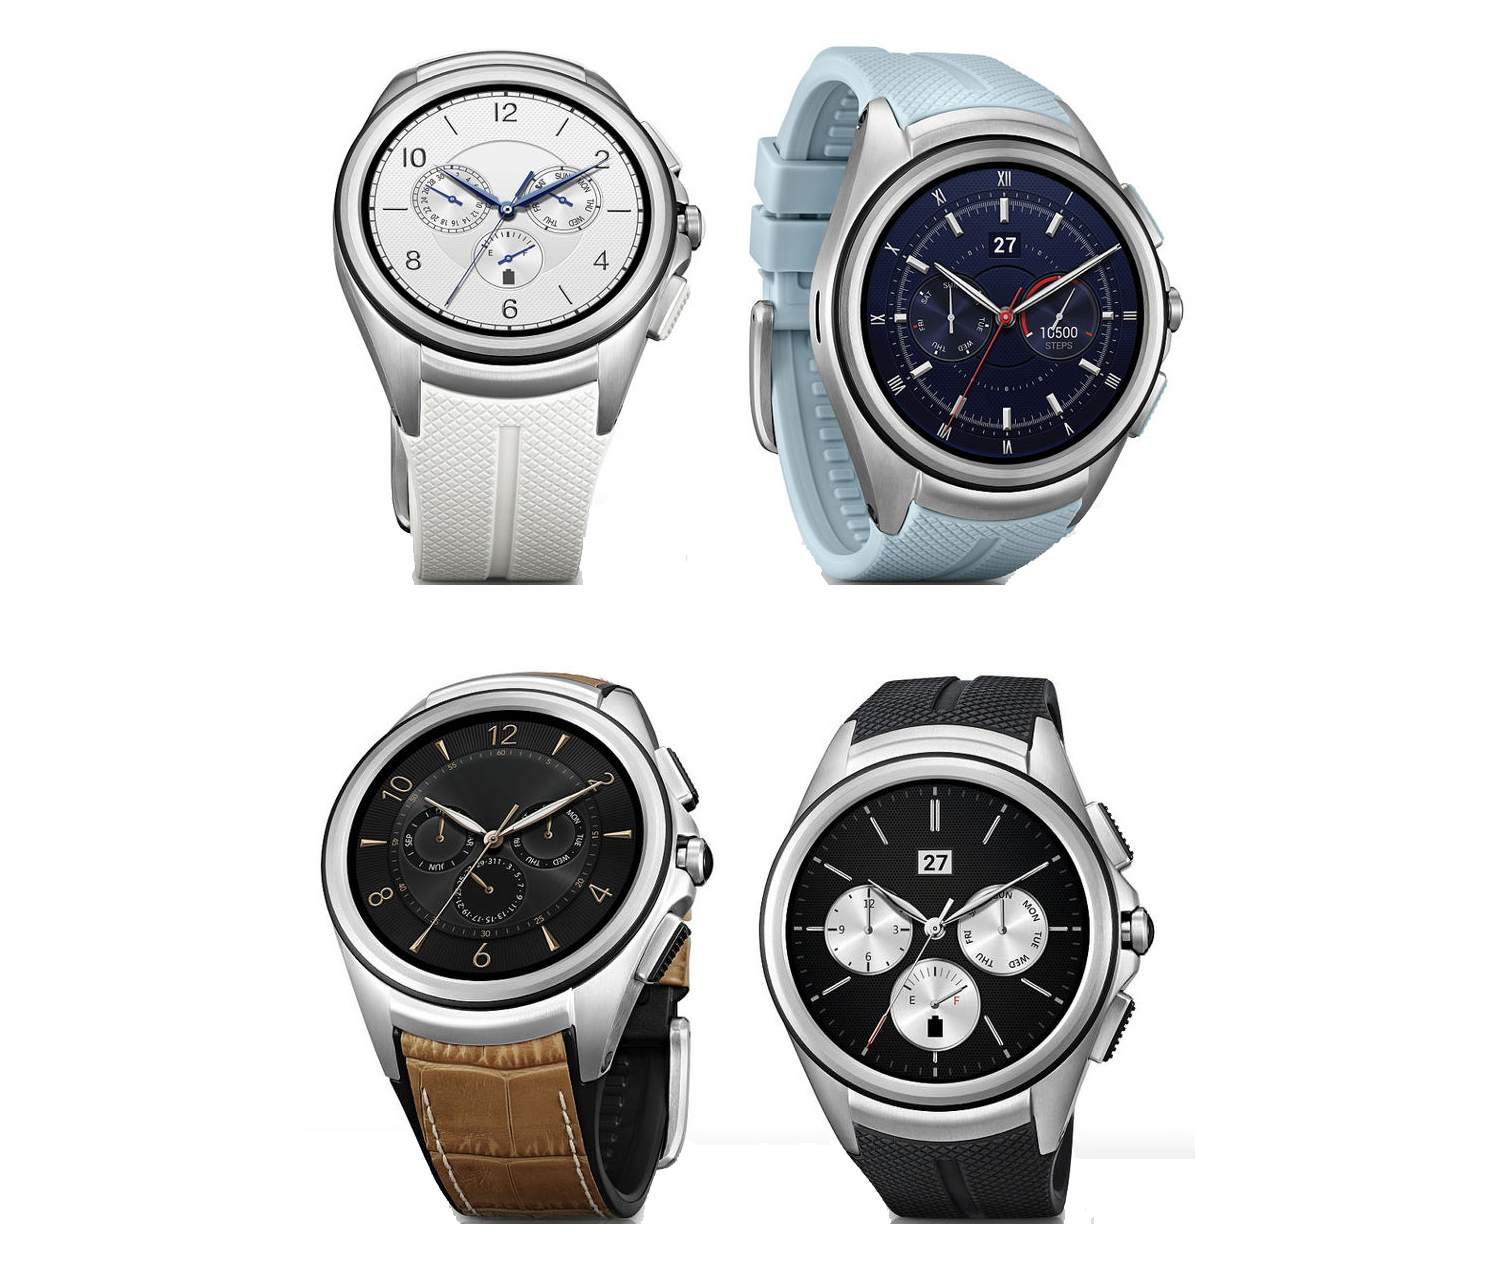 LG Watch Urbane 2nd Edition is the first Android Wear that does not require a smartphone 1